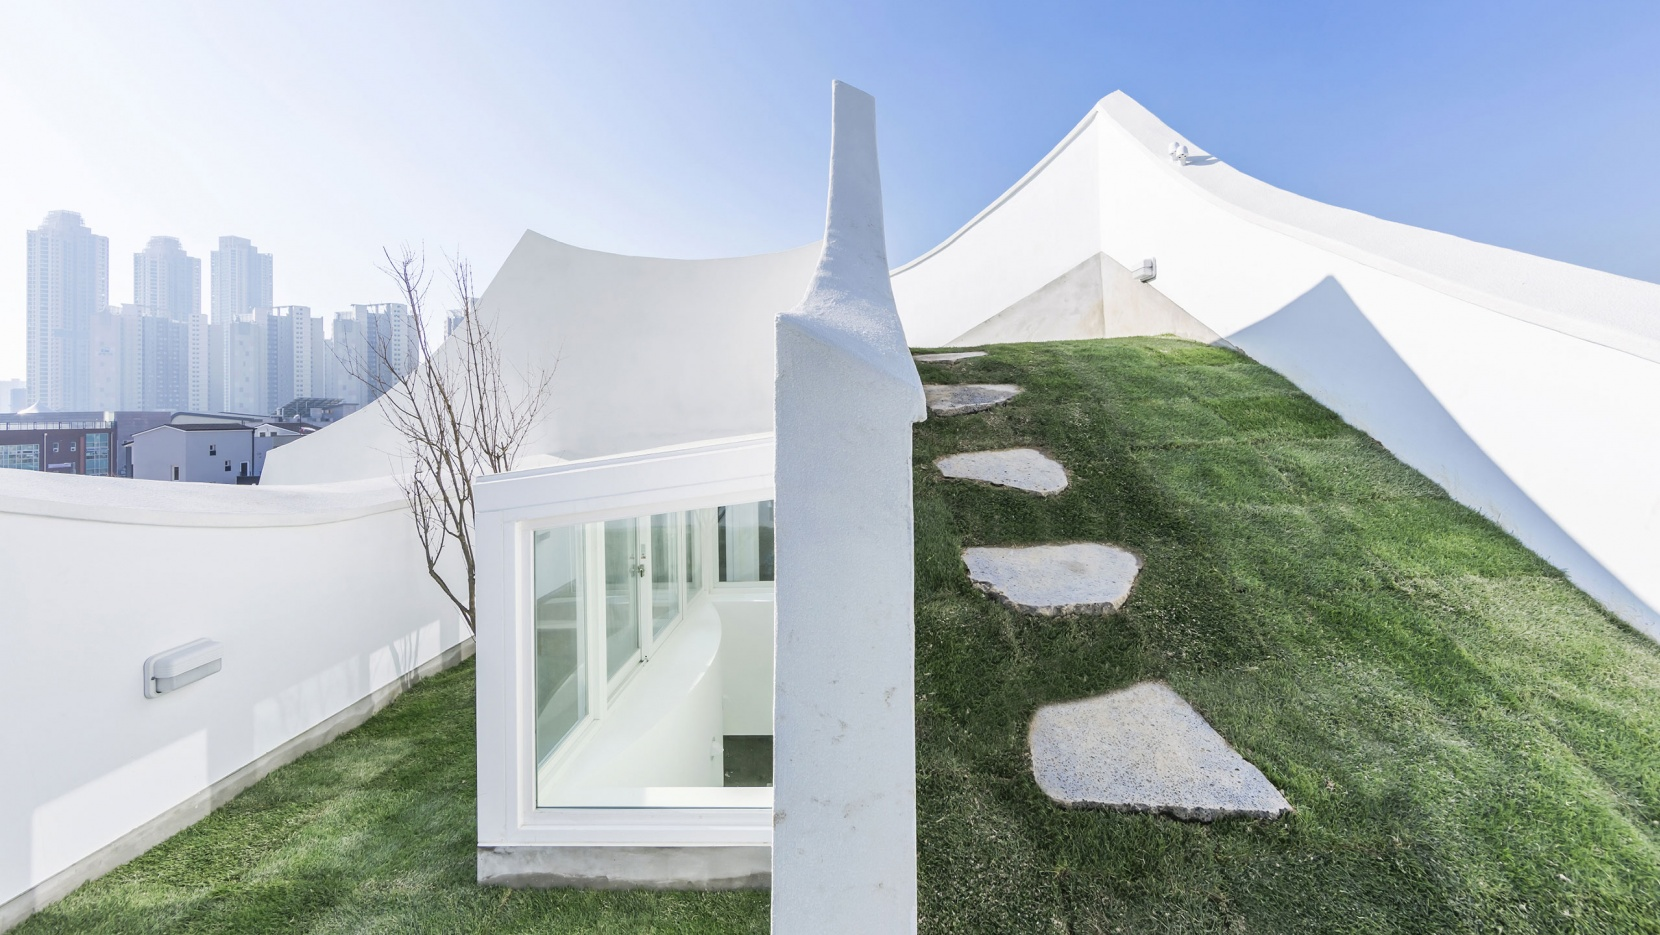 the flying house by iroje khm architects has landed near